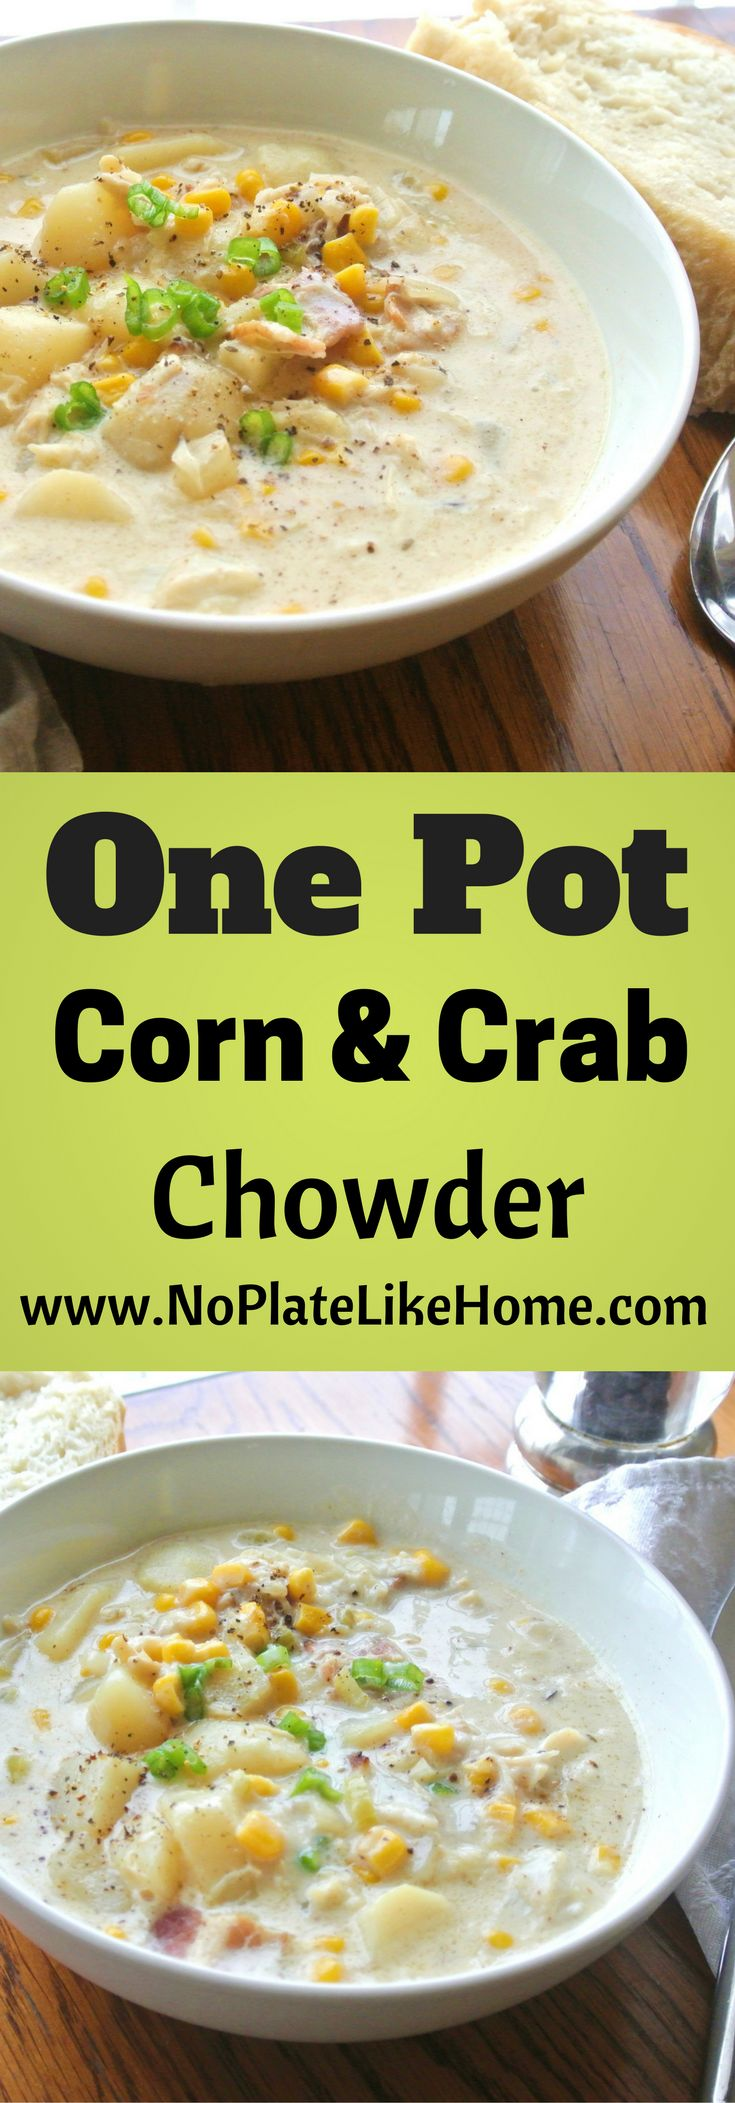 An easy, creamy and filling One Pot Corn and Crab Chowder. This recipe has bacon, cream, crab, corn, potatoes, celery, onions and carrots. Perfect for cold winter days. Pin it for later!